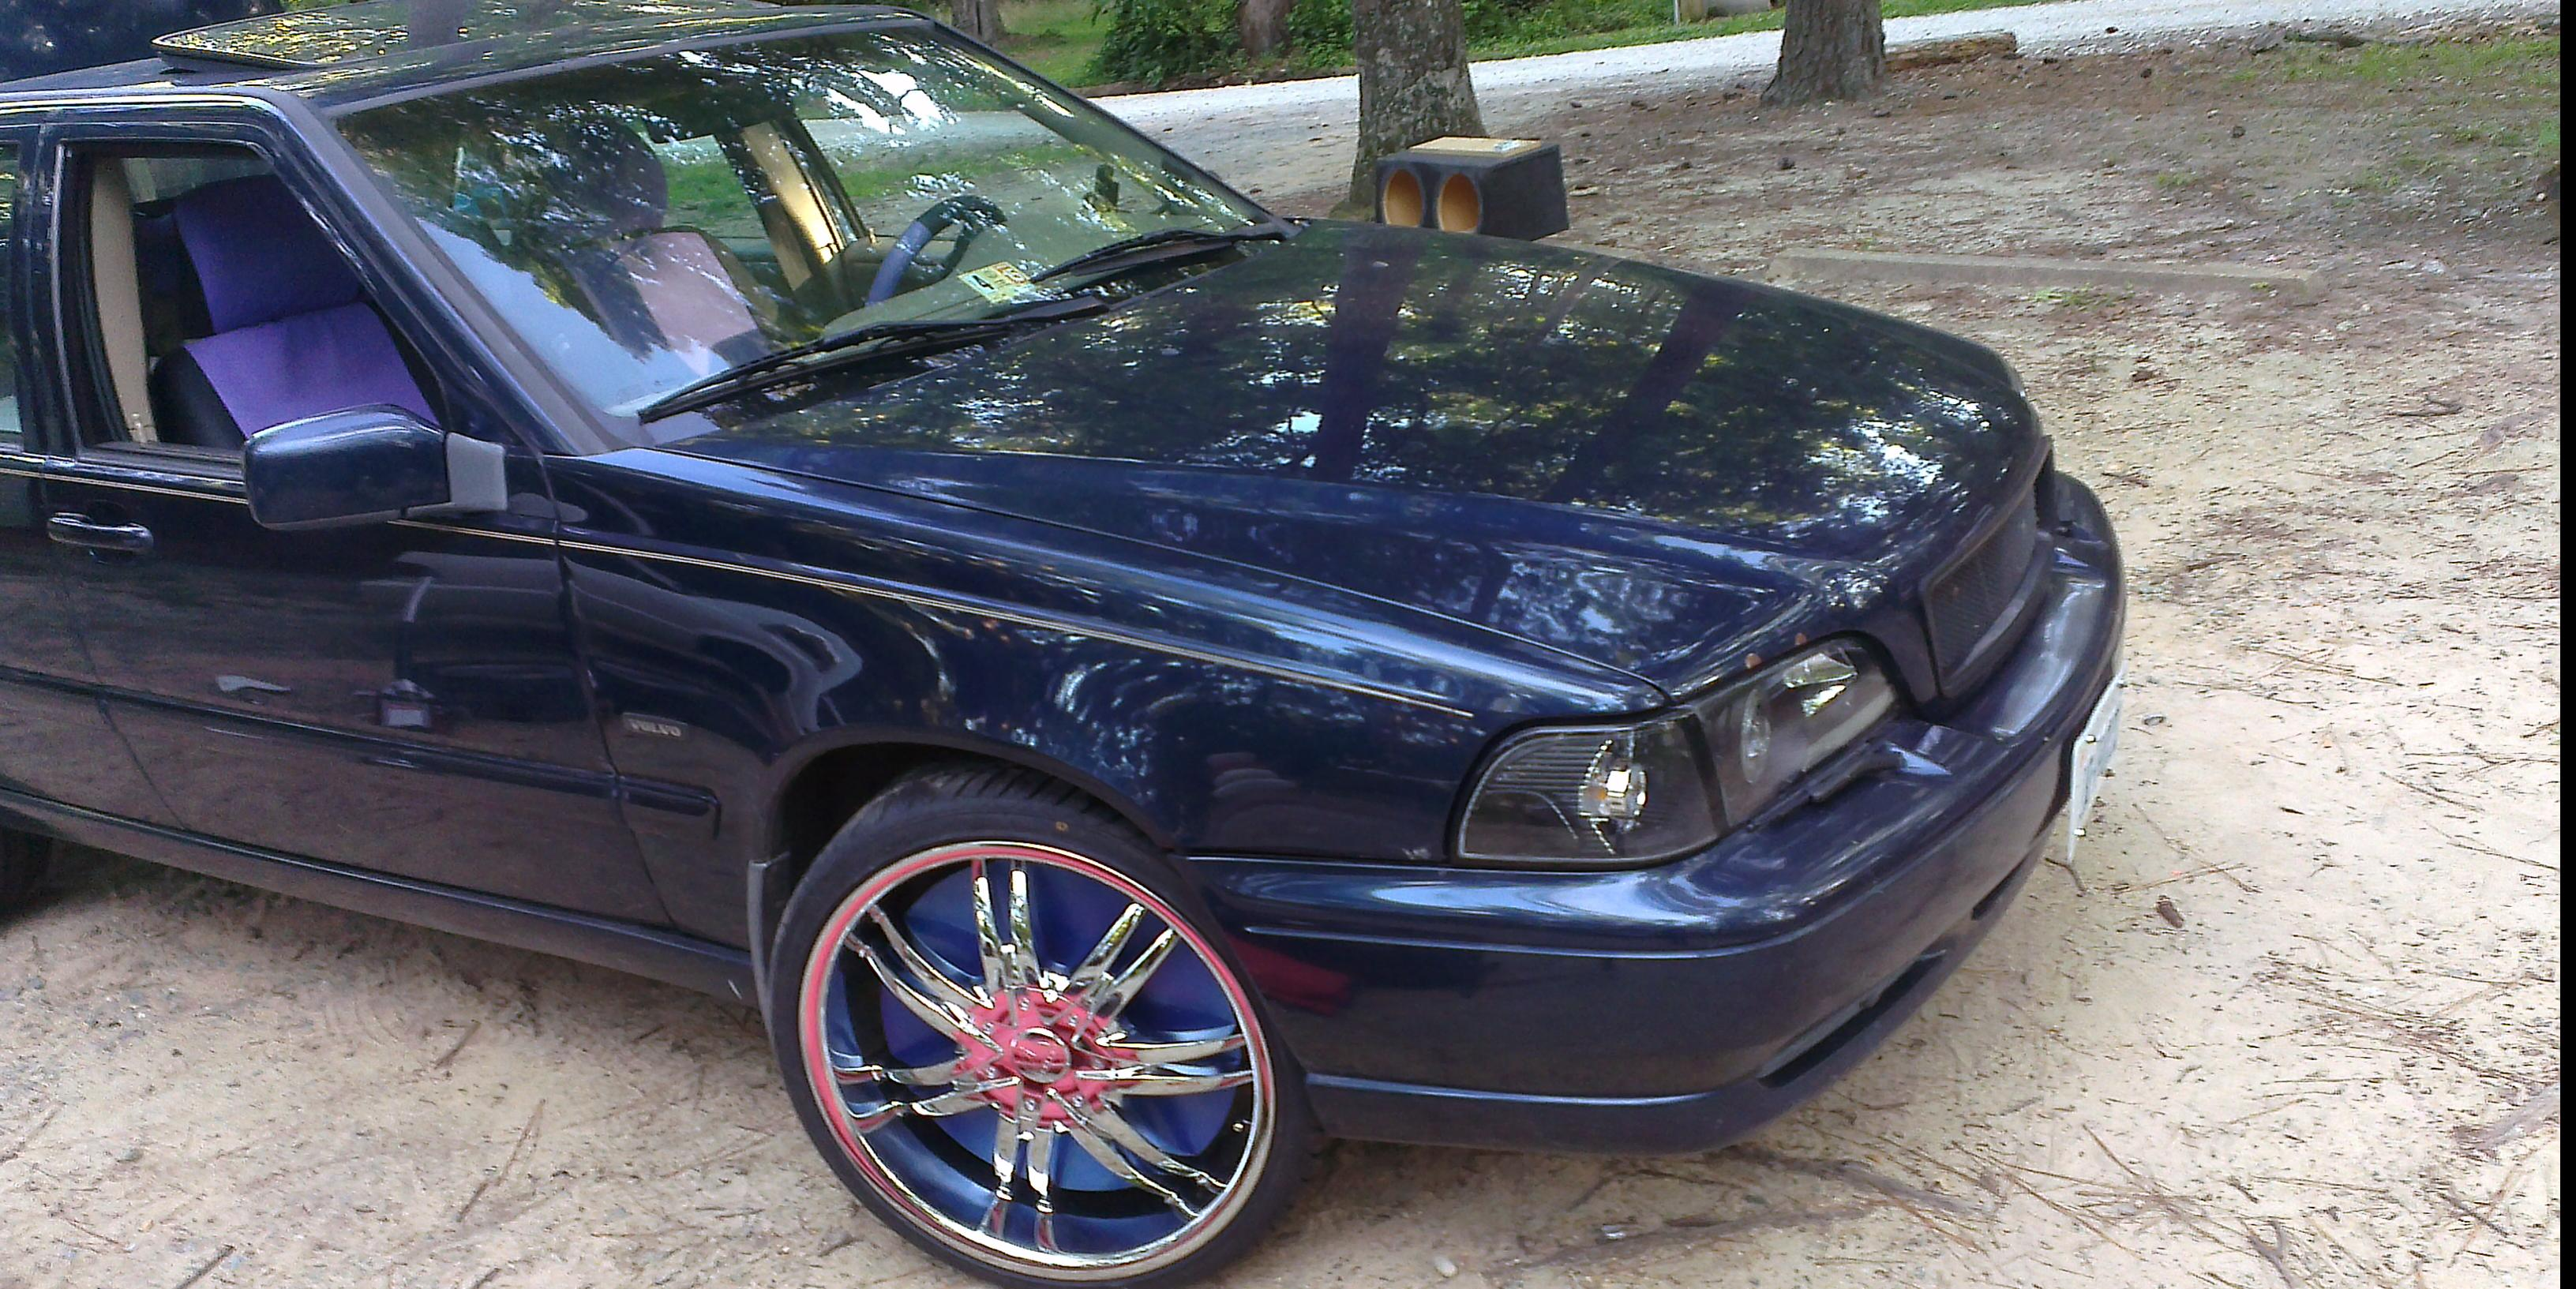 James DuVal Redmond's 1998 Volvo S70